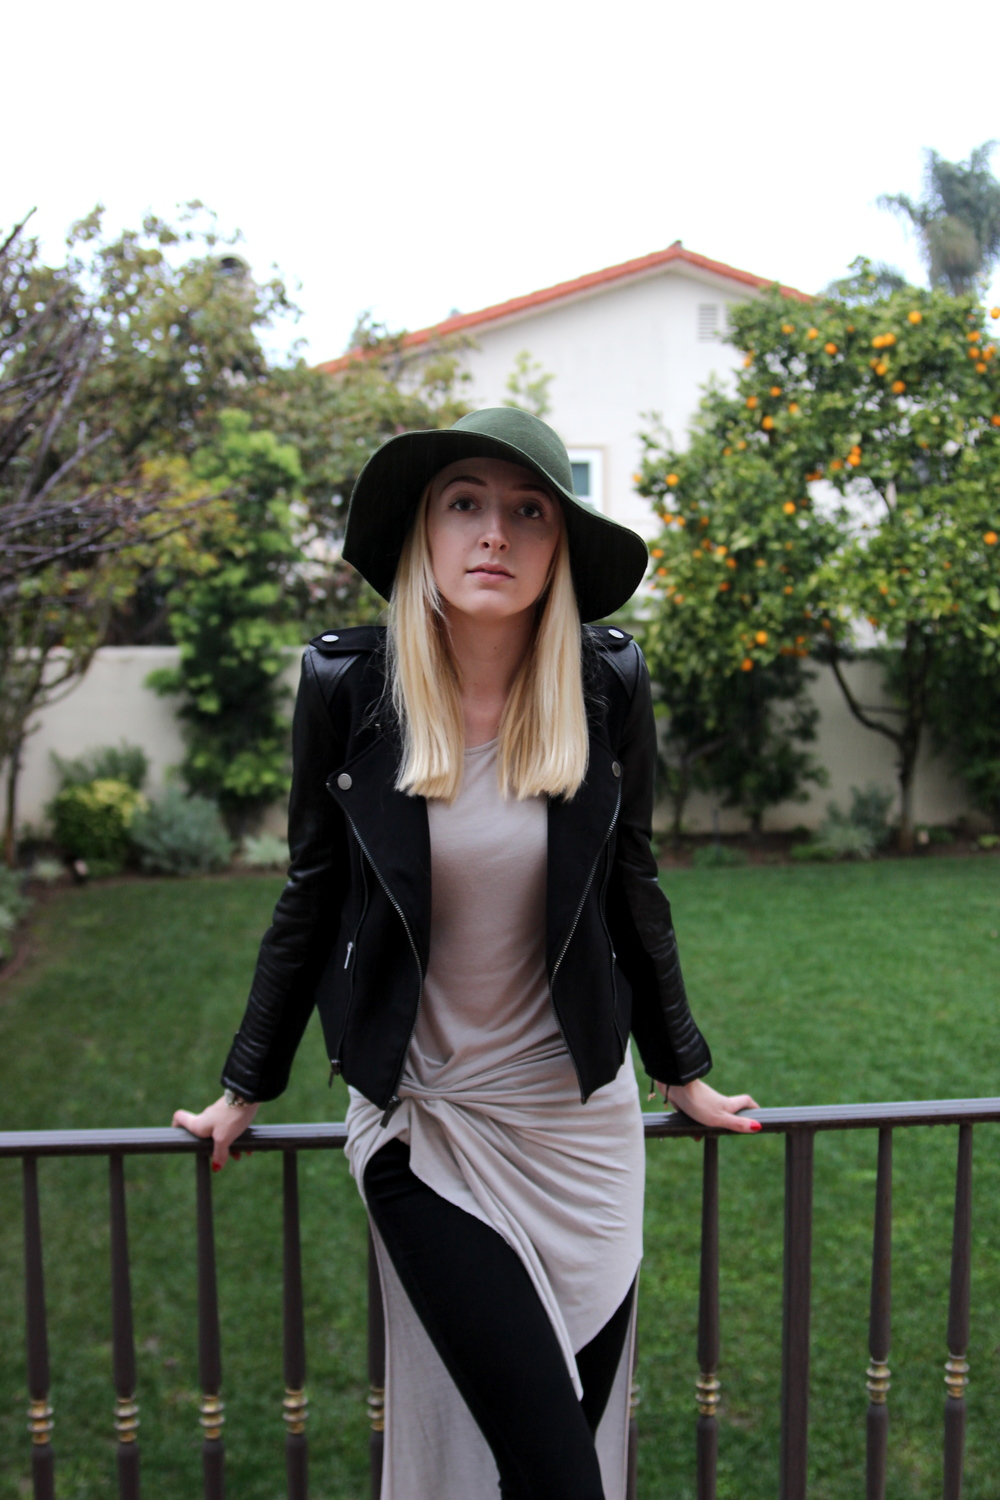 Jacket   BCBG Max Azria   // Dress   AllSaints   // Jeans   J. Brand   // Hat   Anthropologie